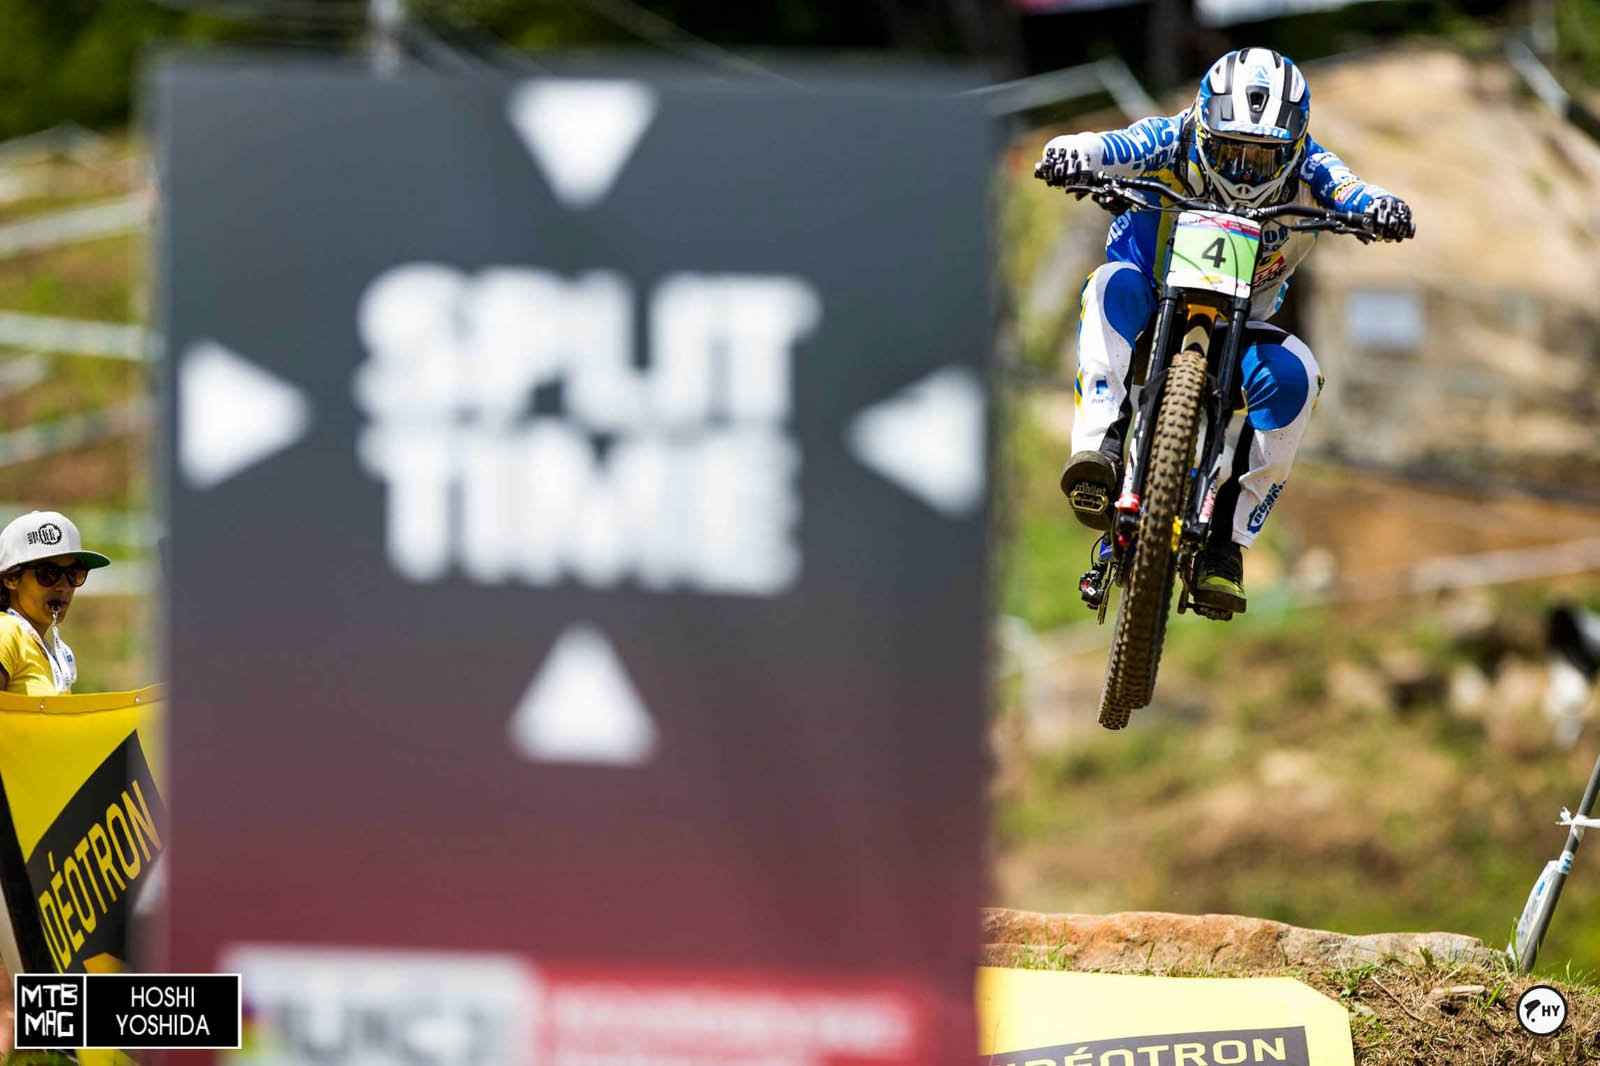 Elliot Heap, 3rd in Junio men's and looking like he's going to have a bright future.